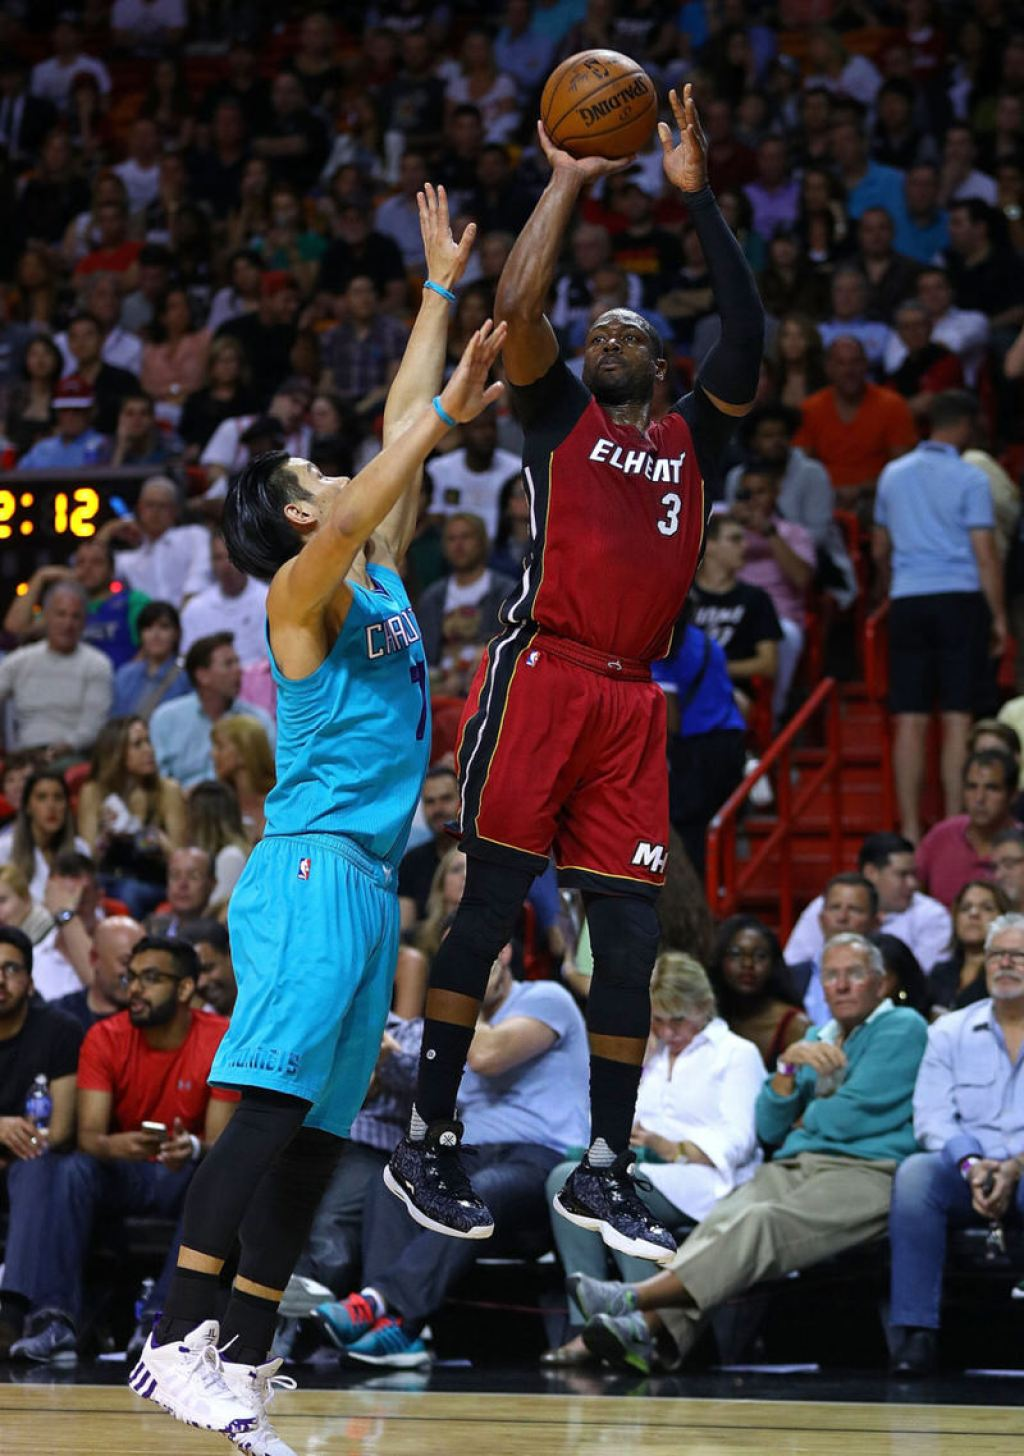 Jeremy Lin and Dwyane Wade in the adidas CrazyQuick 3 Low and the Li-Ning Way of Wade 4, respectively